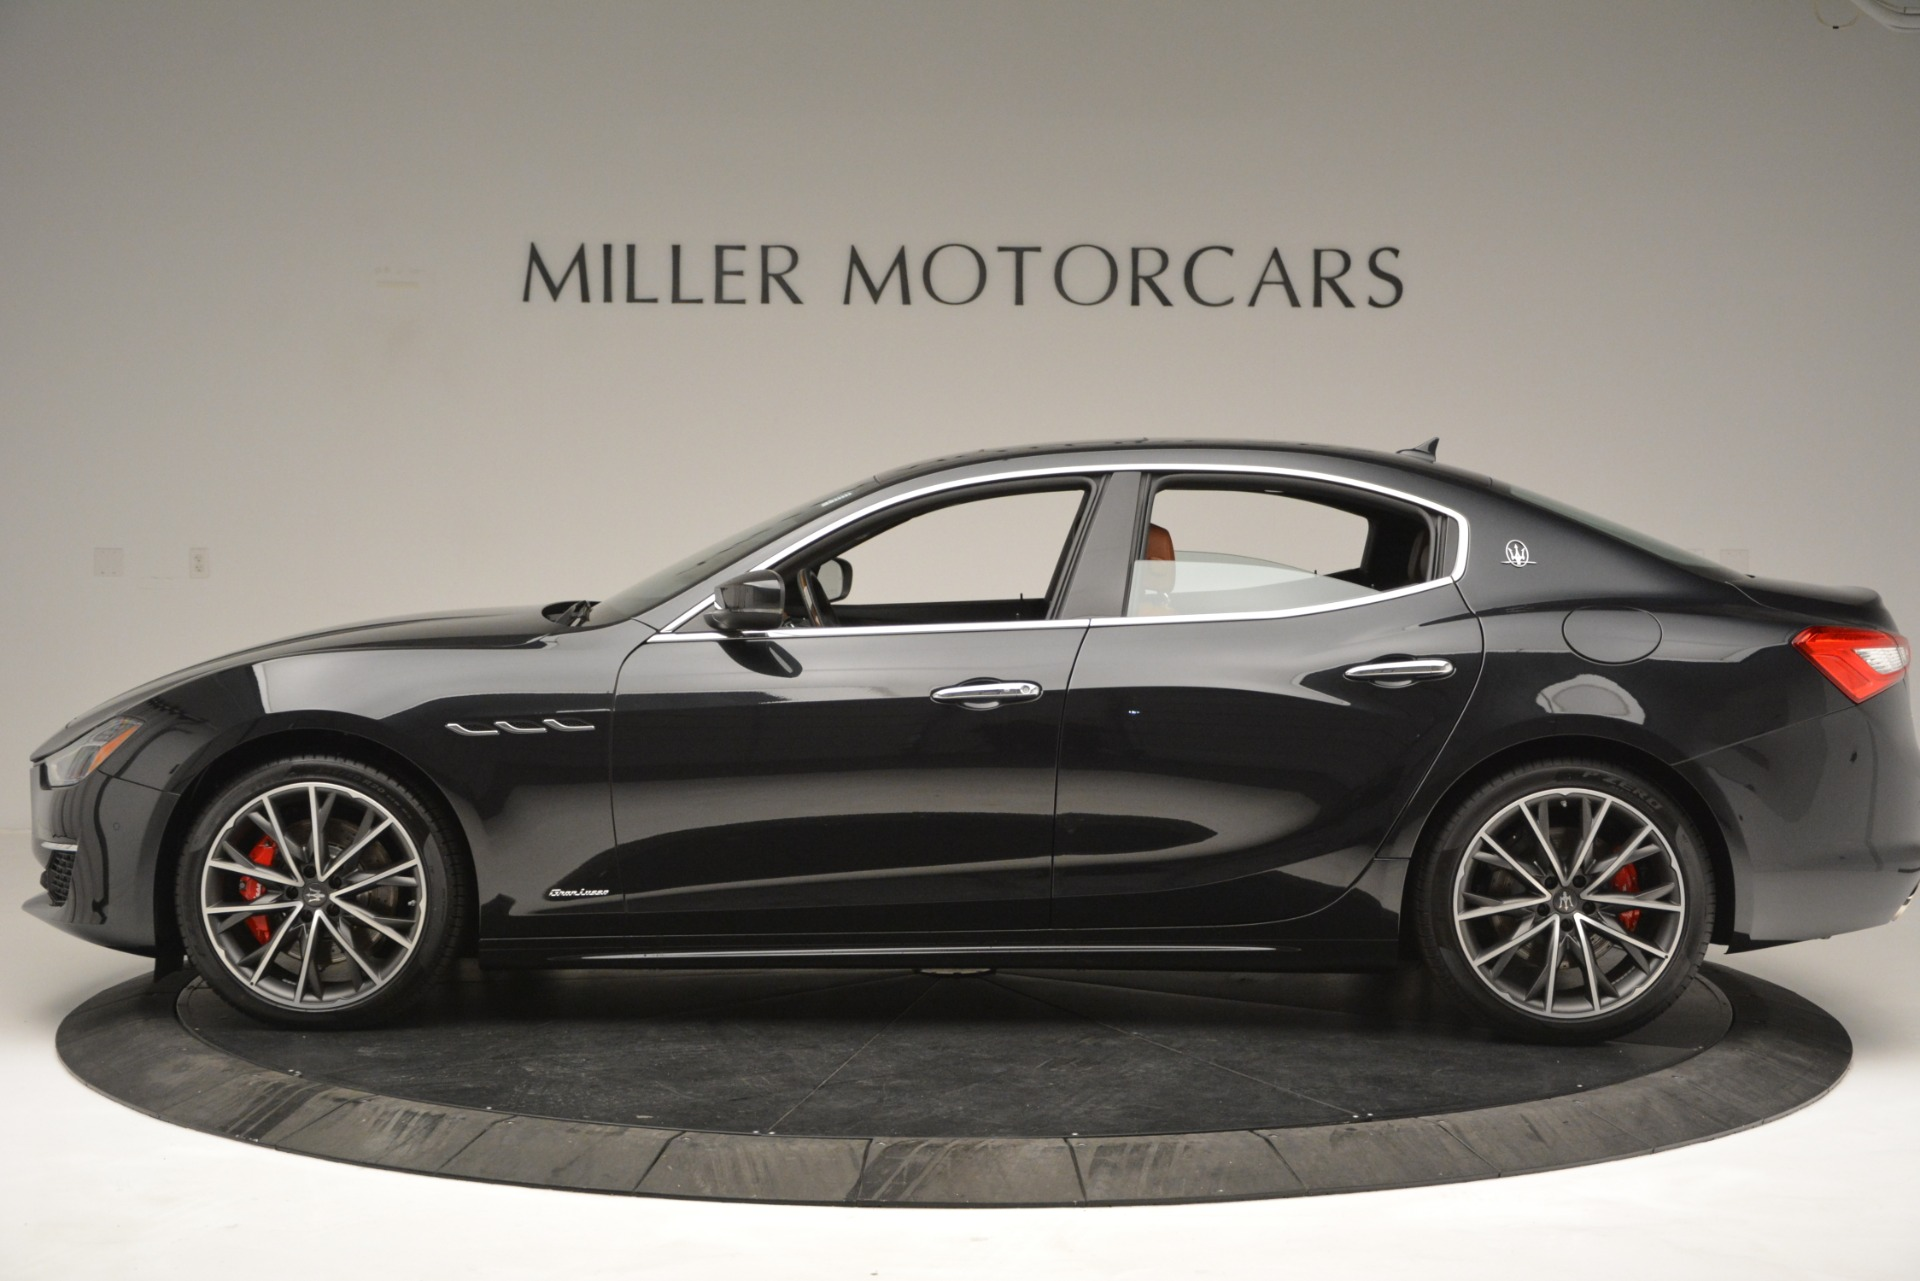 New 2019 Maserati Ghibli S Q4 GranLusso For Sale In Greenwich, CT. Alfa Romeo of Greenwich, M2222 2589_p3